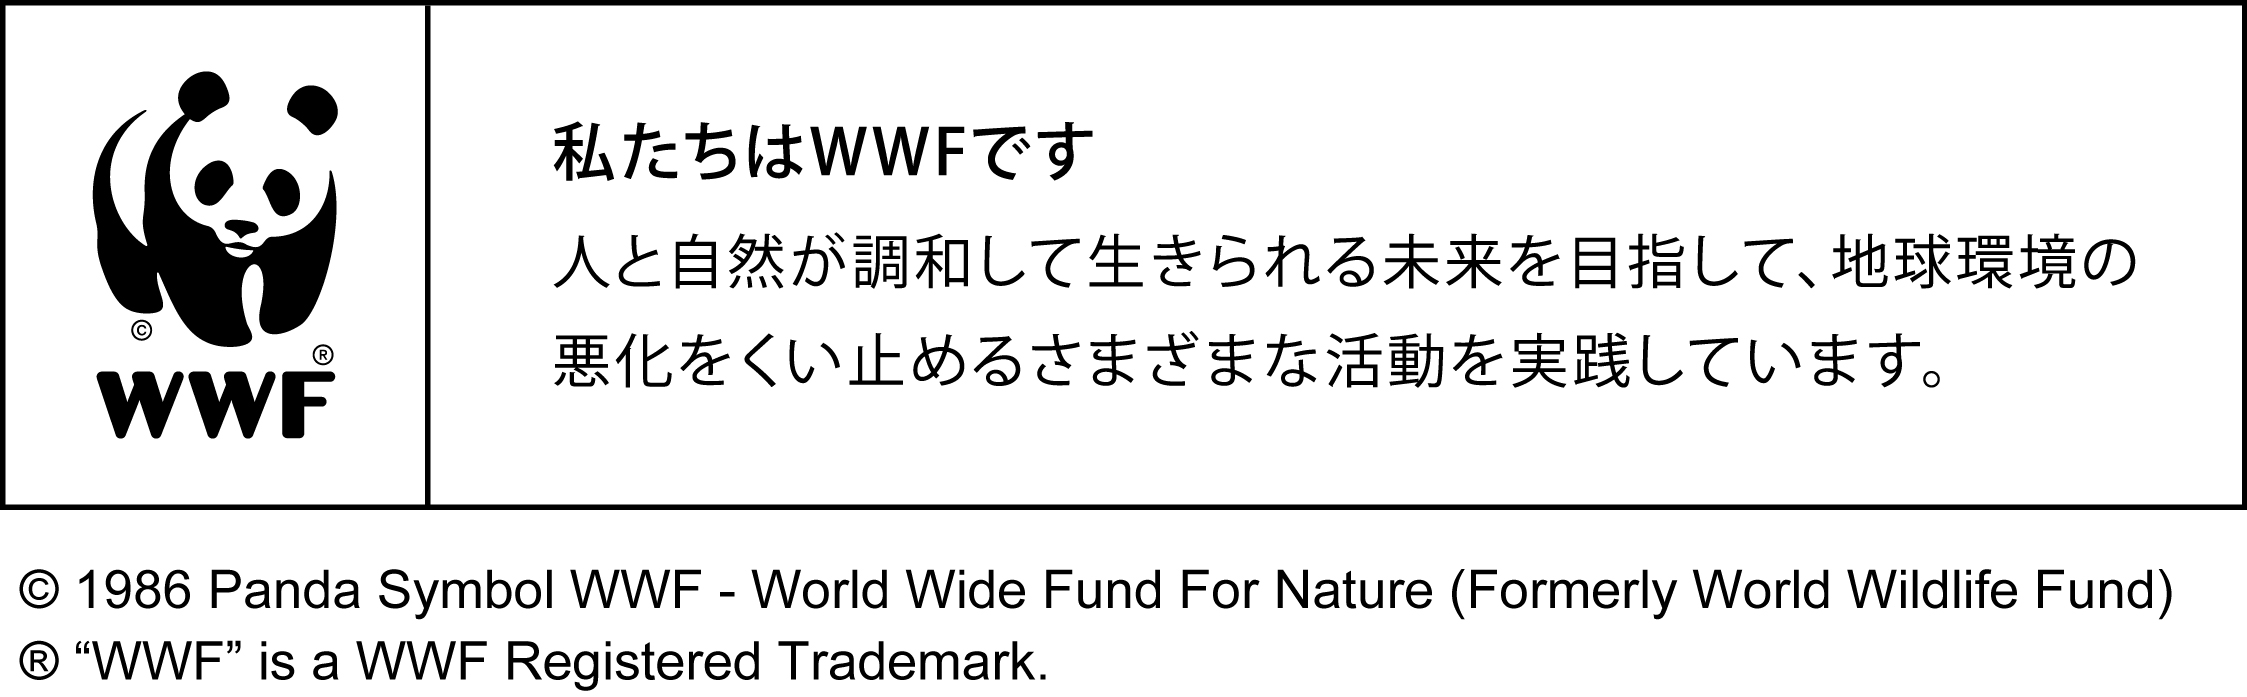 WWF_Boilerplate_(C)(R)